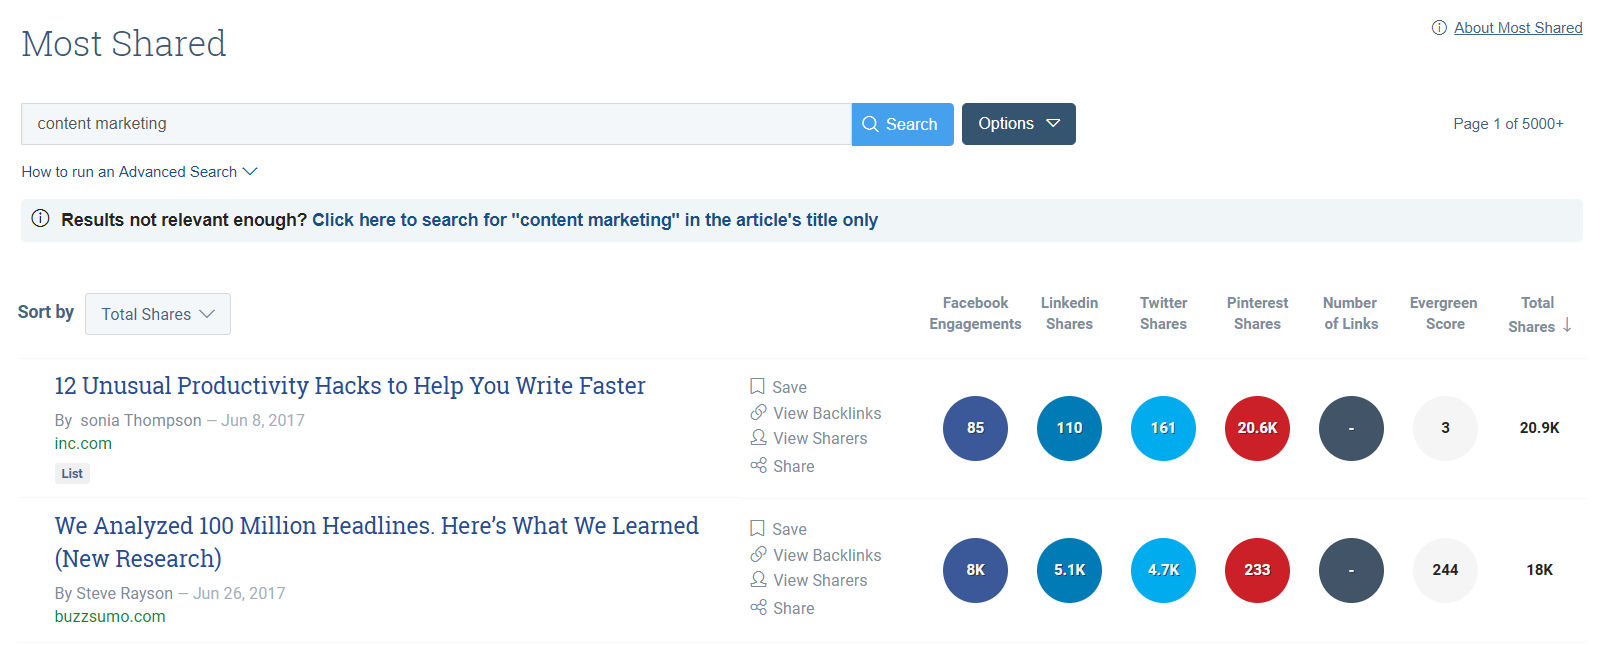 BuzzSumo examines the most popular social content based on networks and topics